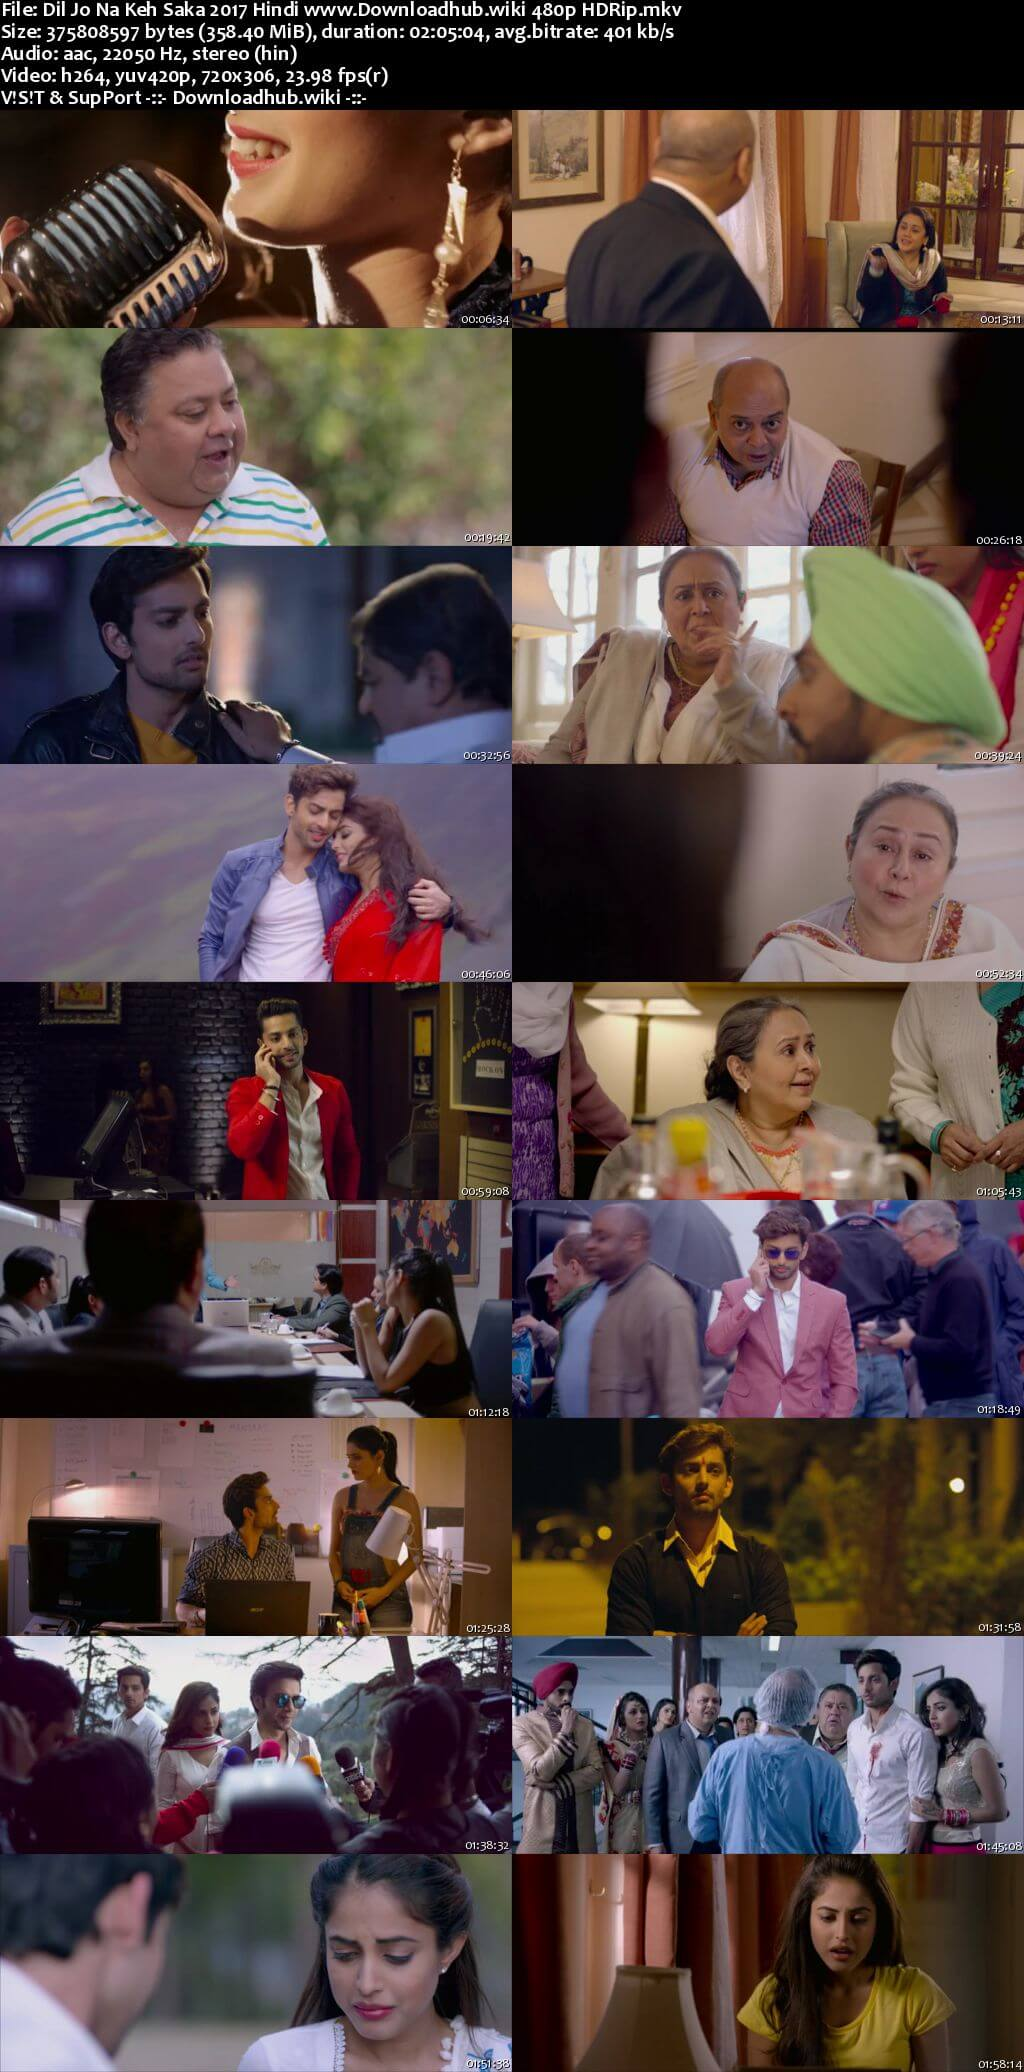 Dil Jo Na Keh Saka 2017 Hindi 350MB HDRip 480p